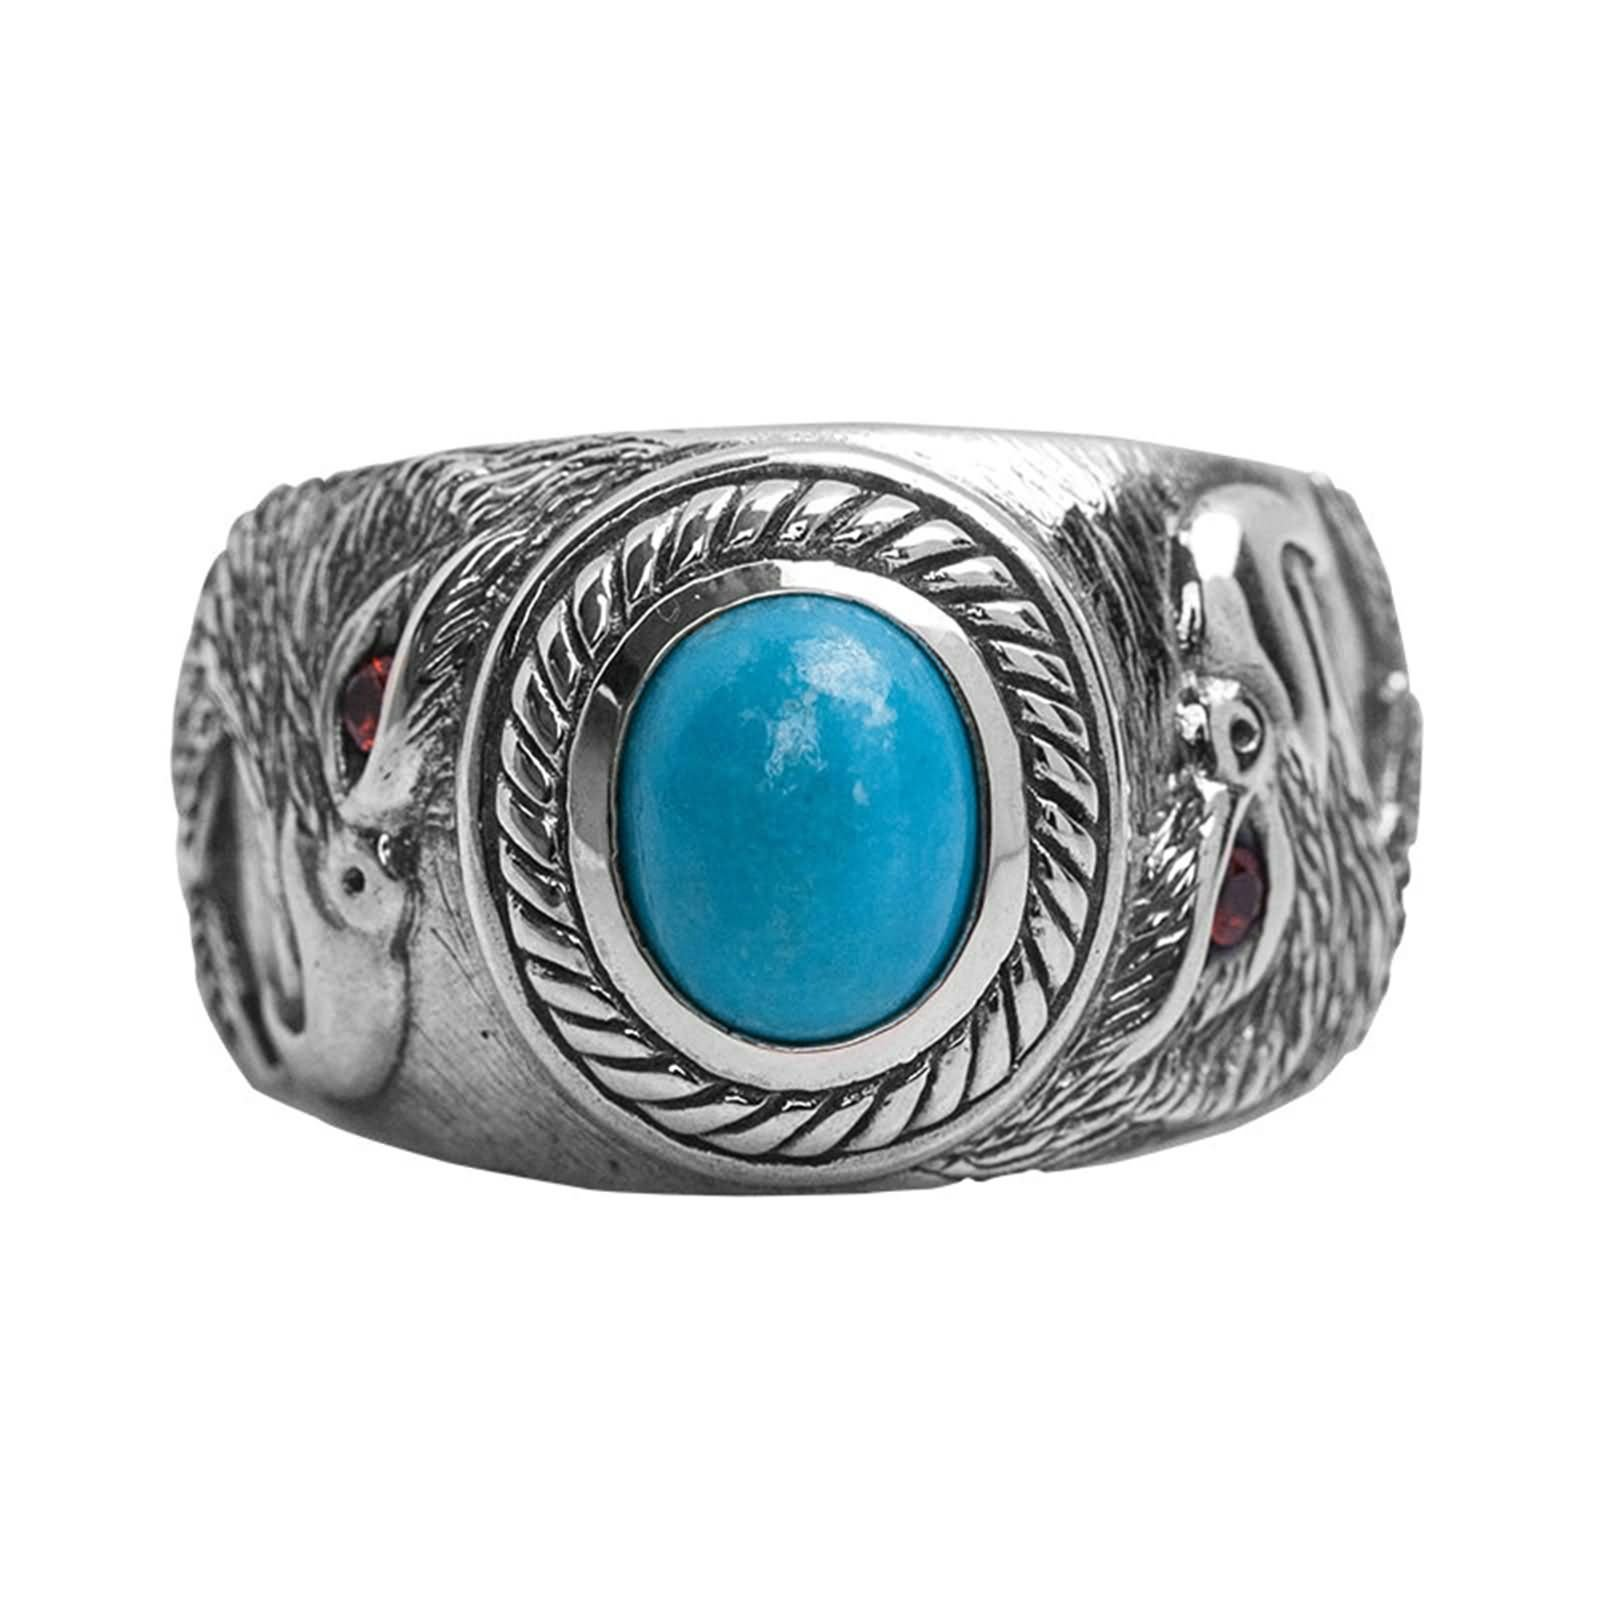 Bishilin Men's Ring Silver Plated with Red Eye Eagle Turquoise Partner Rings Silver Size 8